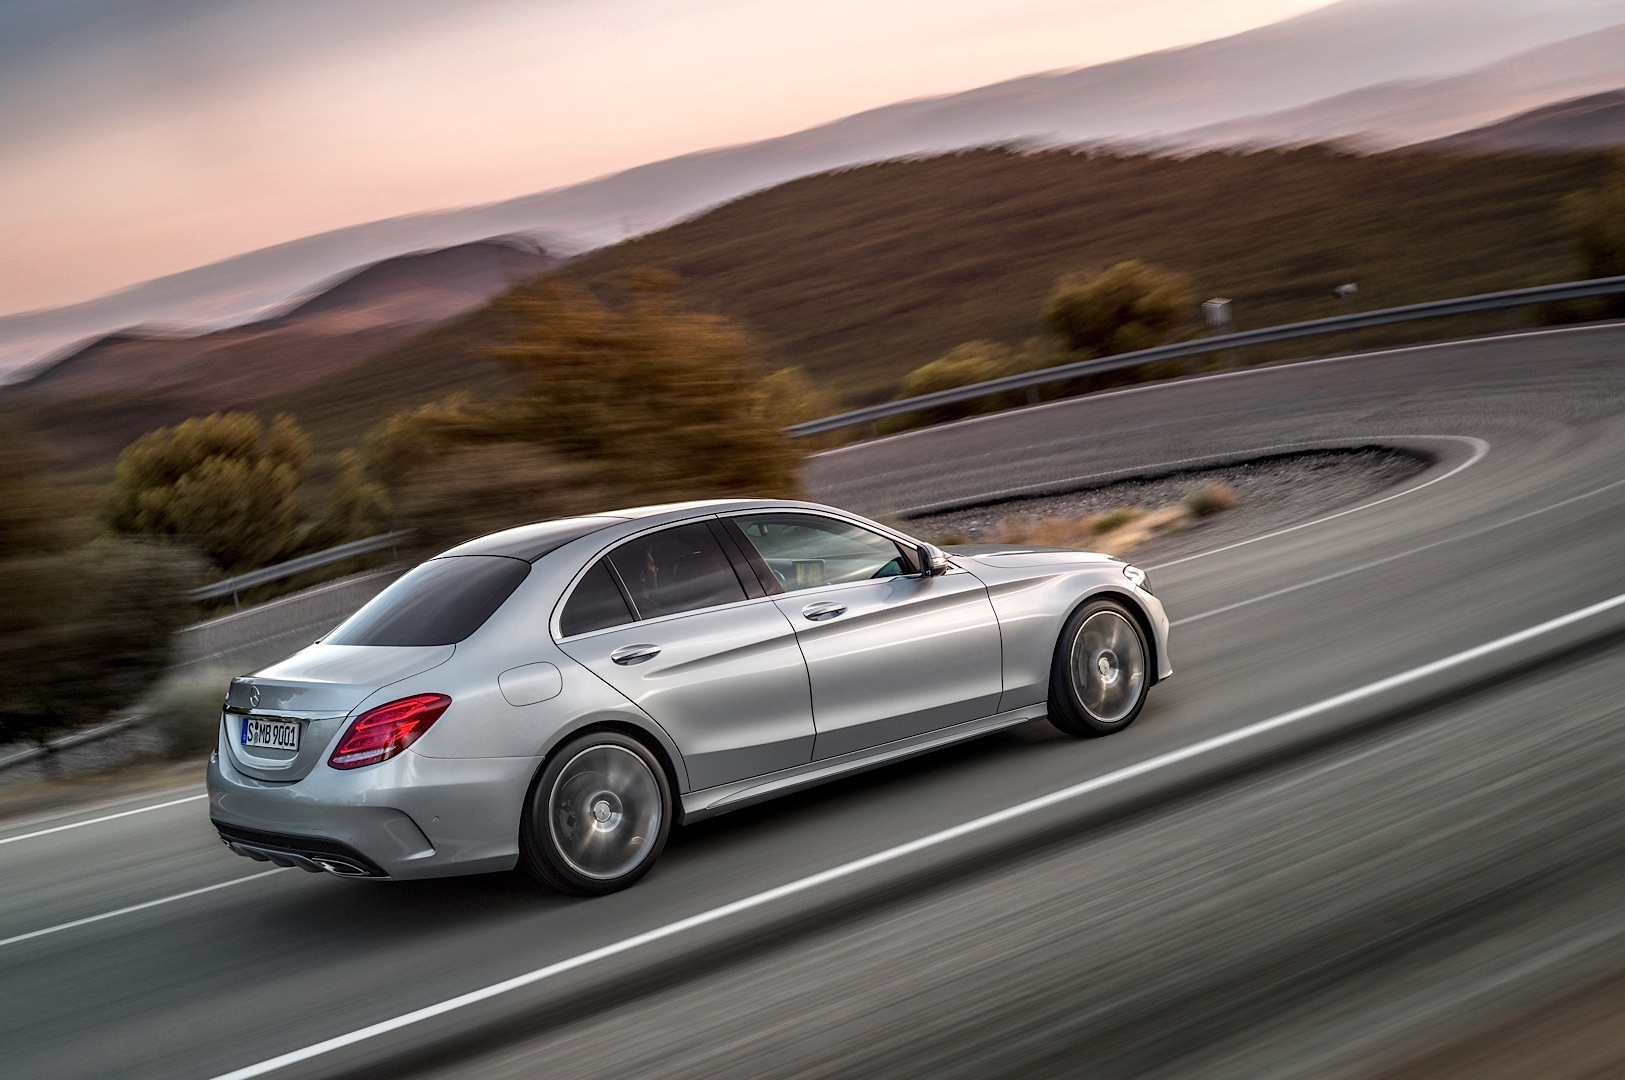 check-out-the-first-official-footage-with-the-new-c-class-w205-video-1080p-44